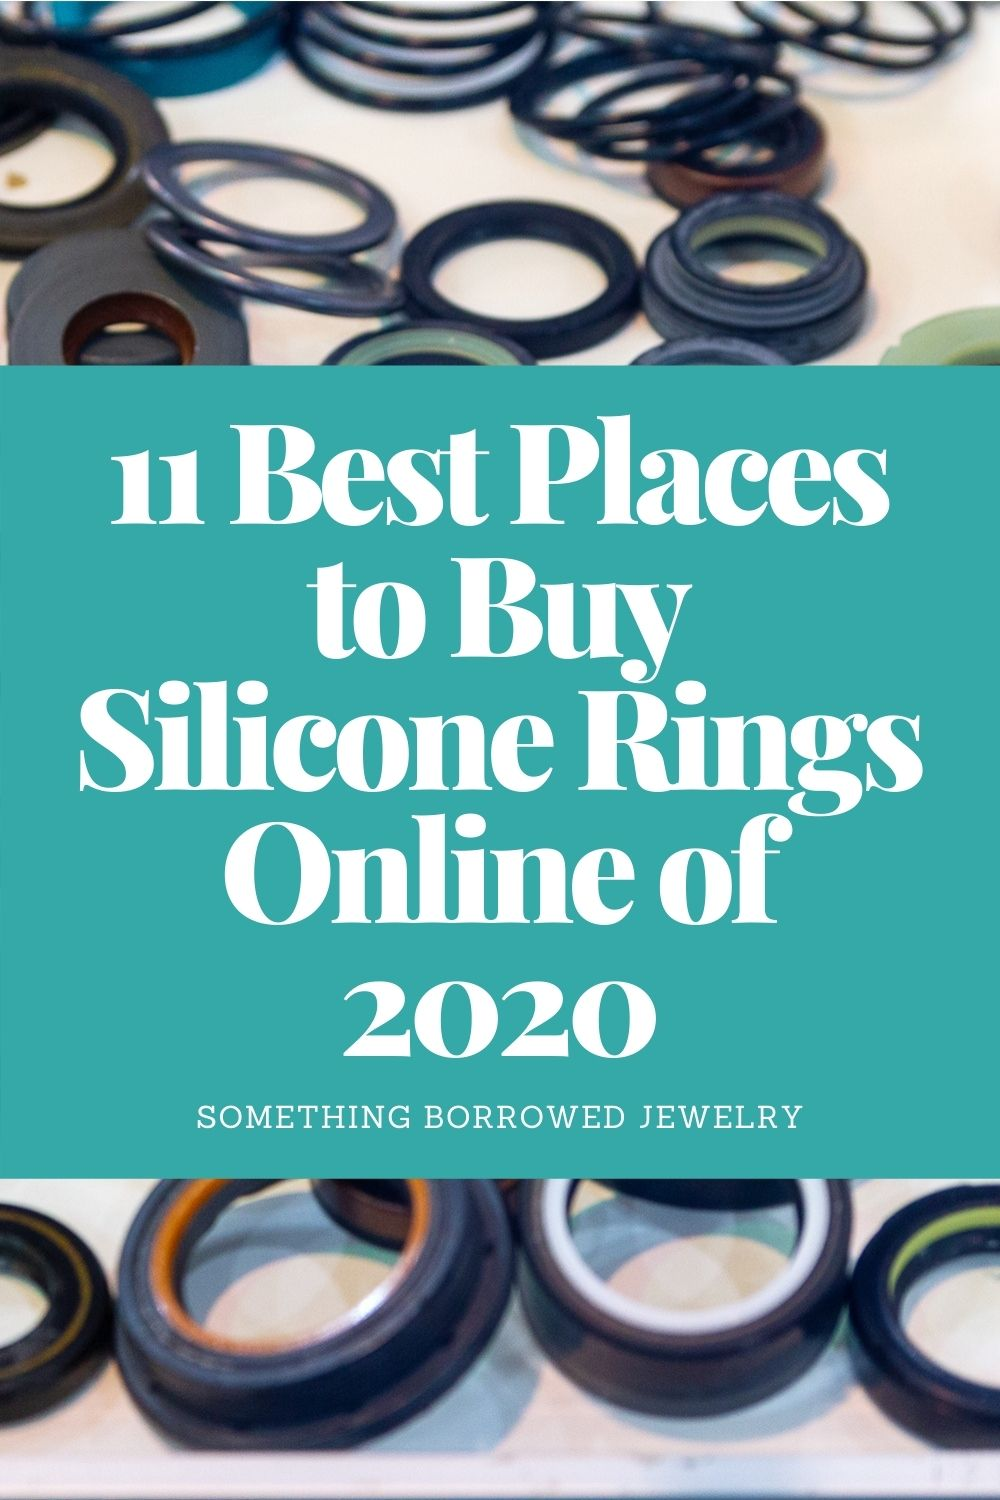 11 Best Places to Buy Silicone Rings Online of 2020 pin 2